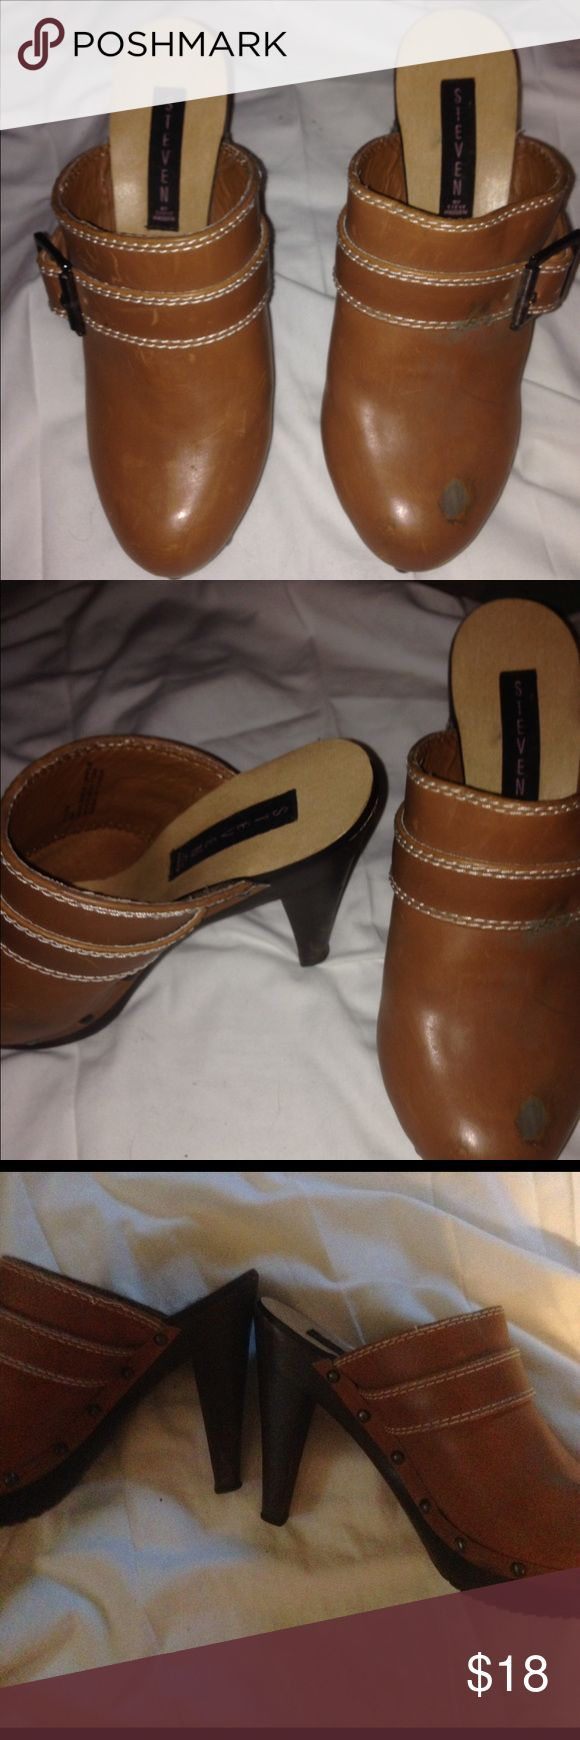 """Steve Madden 4"""" high heeled Clogs. Lovely SZ 8 Brownish gold high heeled Clogs by Steve Madden.  As soon in photo, the left top shoe has some damage. Maybe be able to bring to a shoe shop to get fixed. Otherwishes in flawless condition. Worn twice. Heels are 4inches and have no wear. Since is 8. True to size. A great addition to your collection. Steve Madden Shoes Mules & Clogs"""